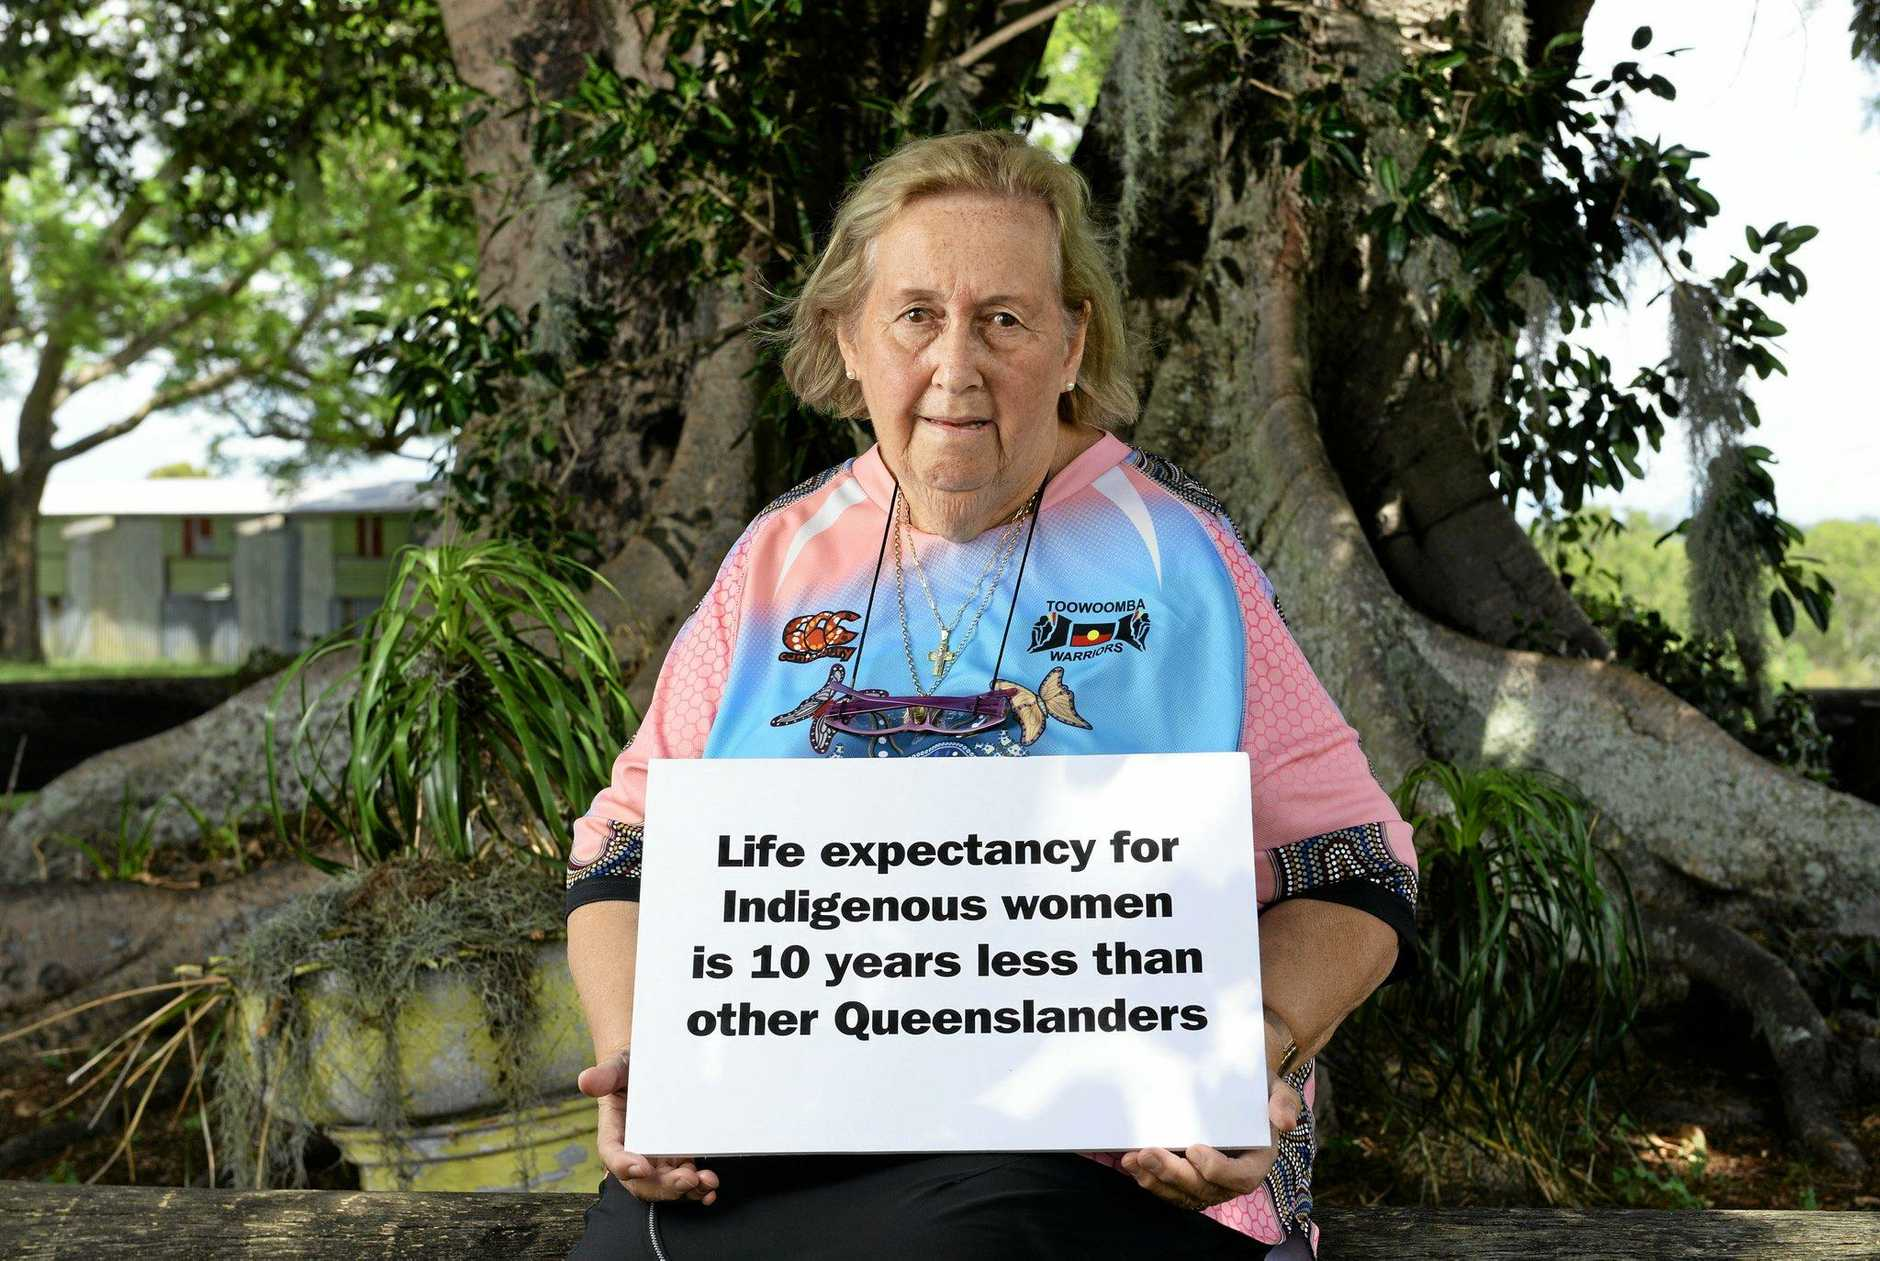 Ipswich Citizen of the Year Faye Carr is also taking part in the QT Queensland Women's Week profile series.